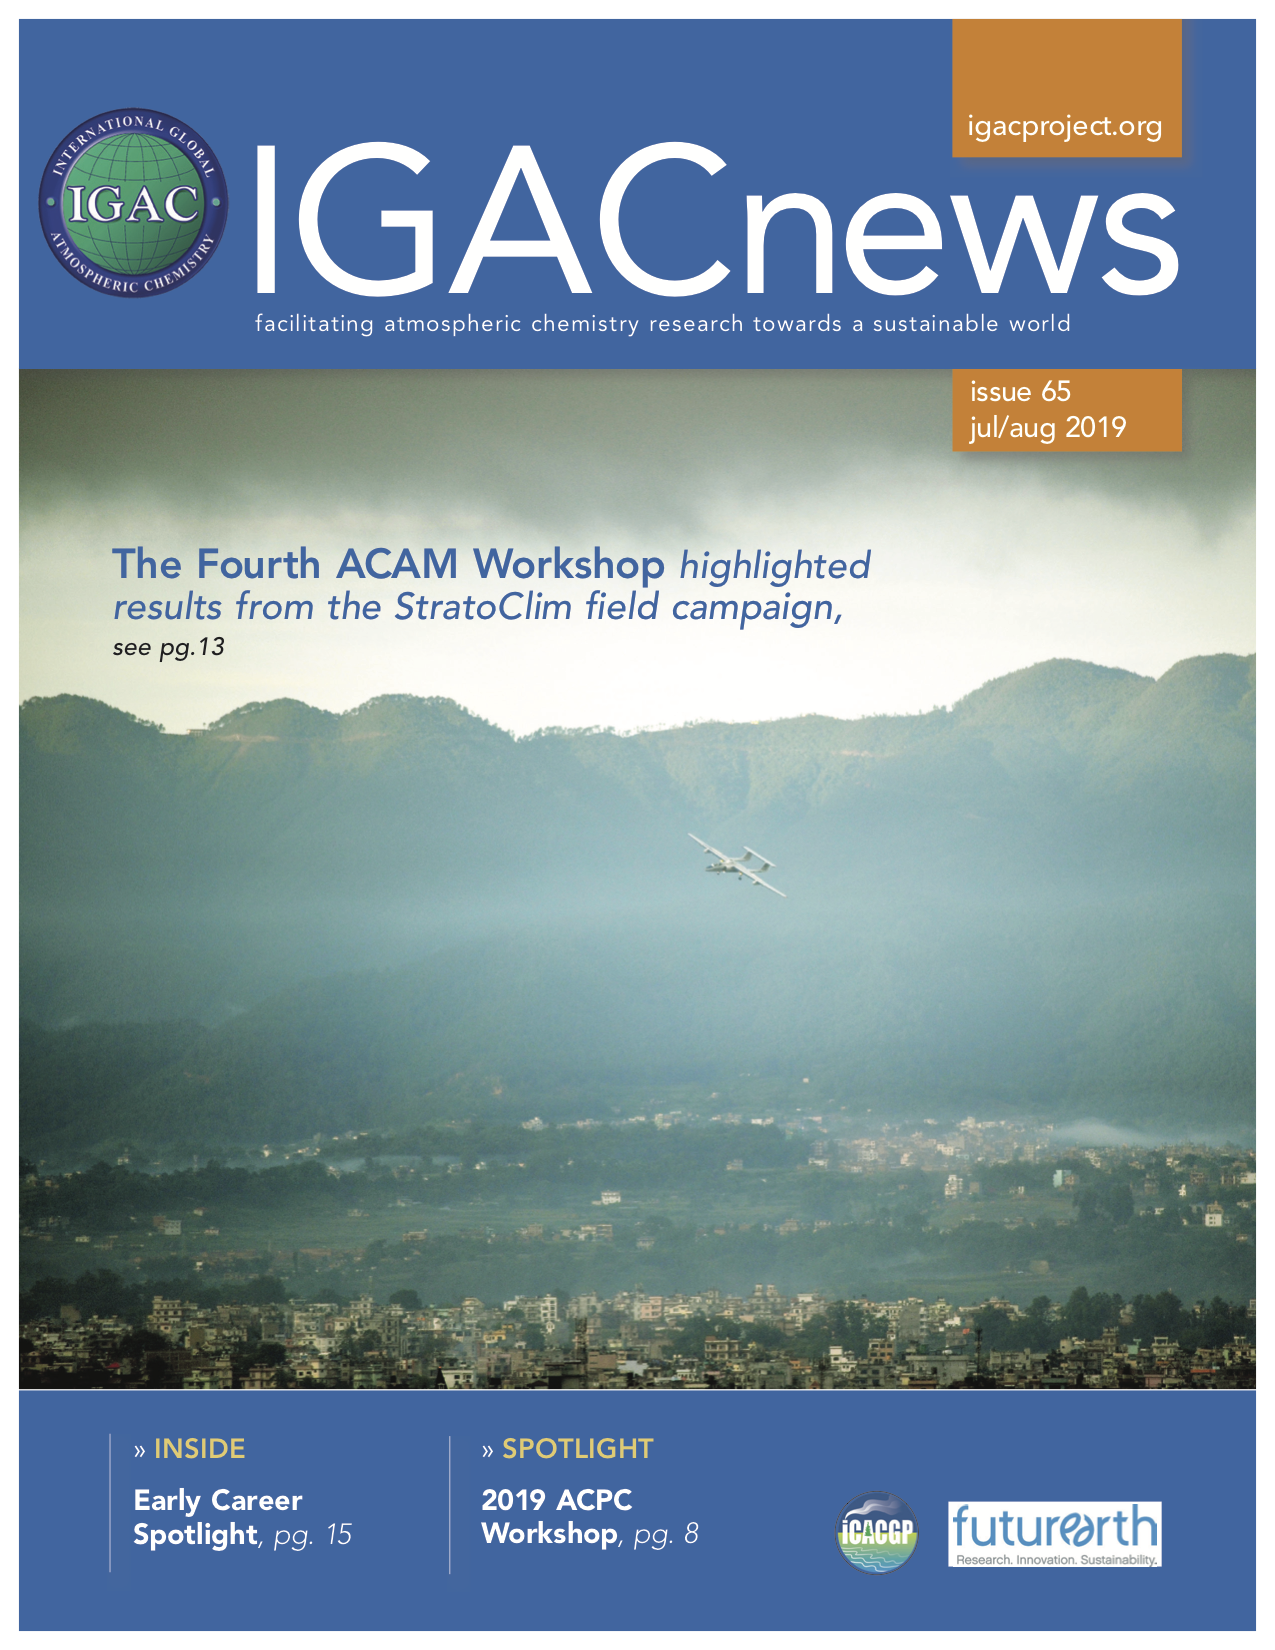 IGACnews Issue 65 Jul/Aug 2019